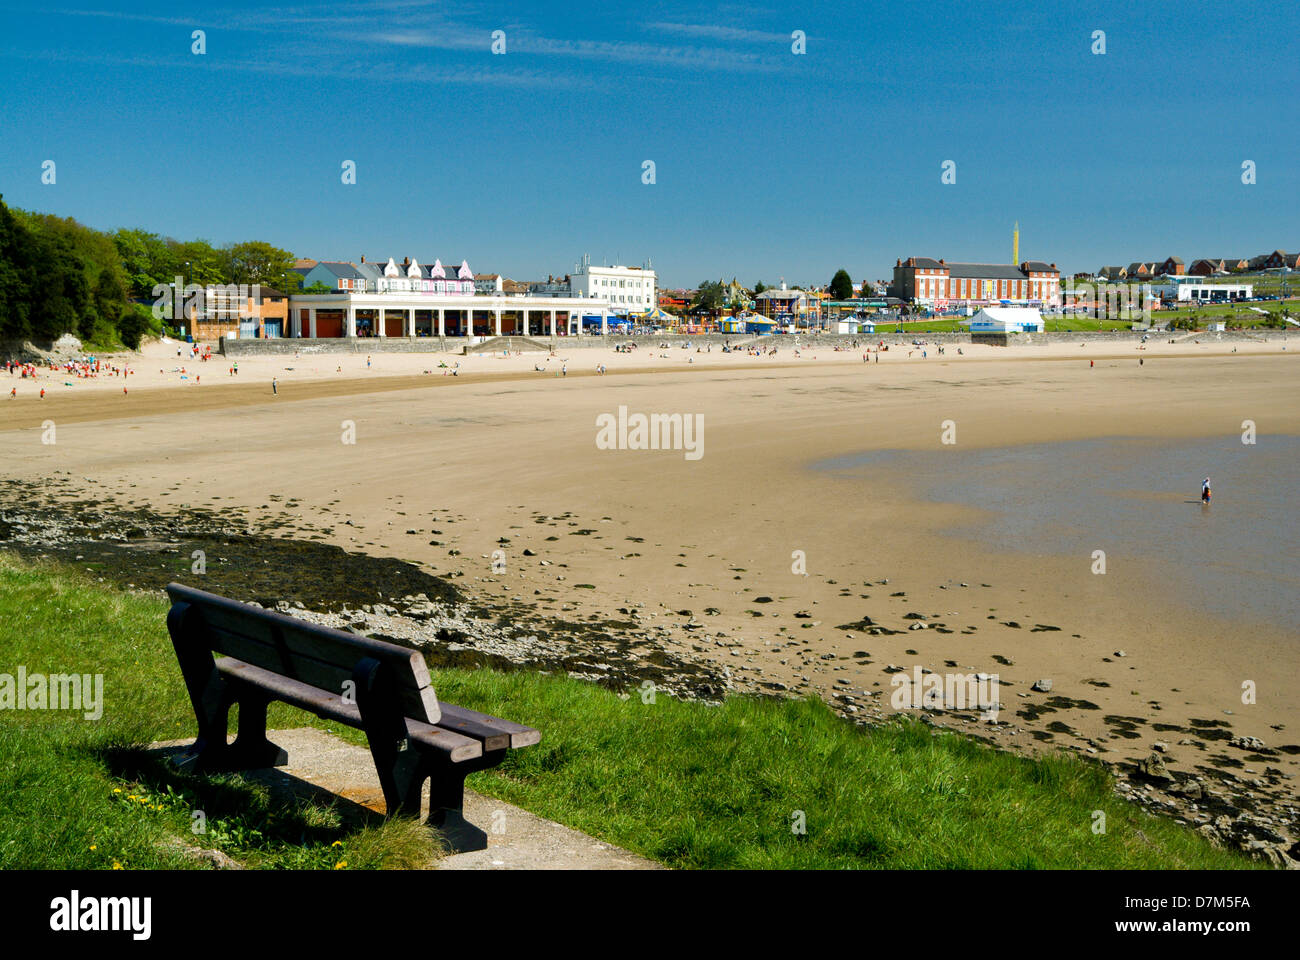 beach whitemore bay barry island vale of glamorgan south wales Stock Photo